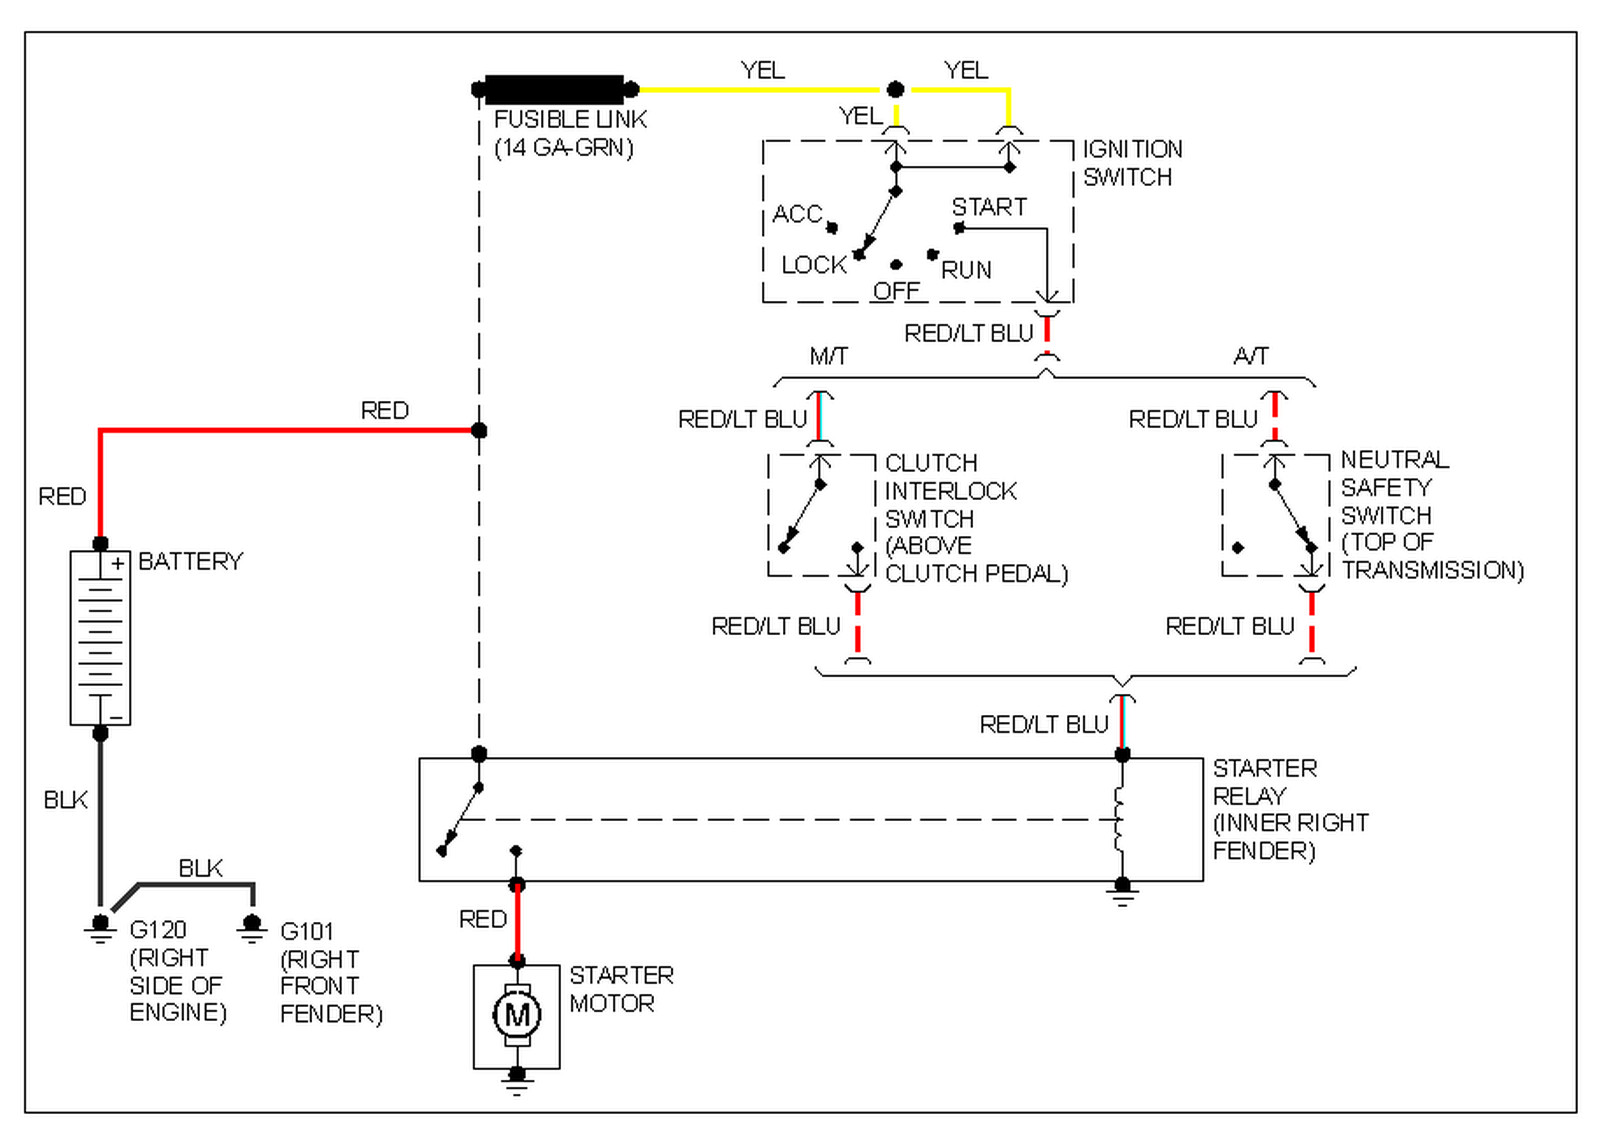 1986 f150 $x4 wiring issue [archive] ford f150 forum forums on 1983 Ford Pickup Wiring Diagrams for 1986 f150 $x4 wiring issue [archive] ford f150 forum forums and owners club at Ford F-150 Wheels